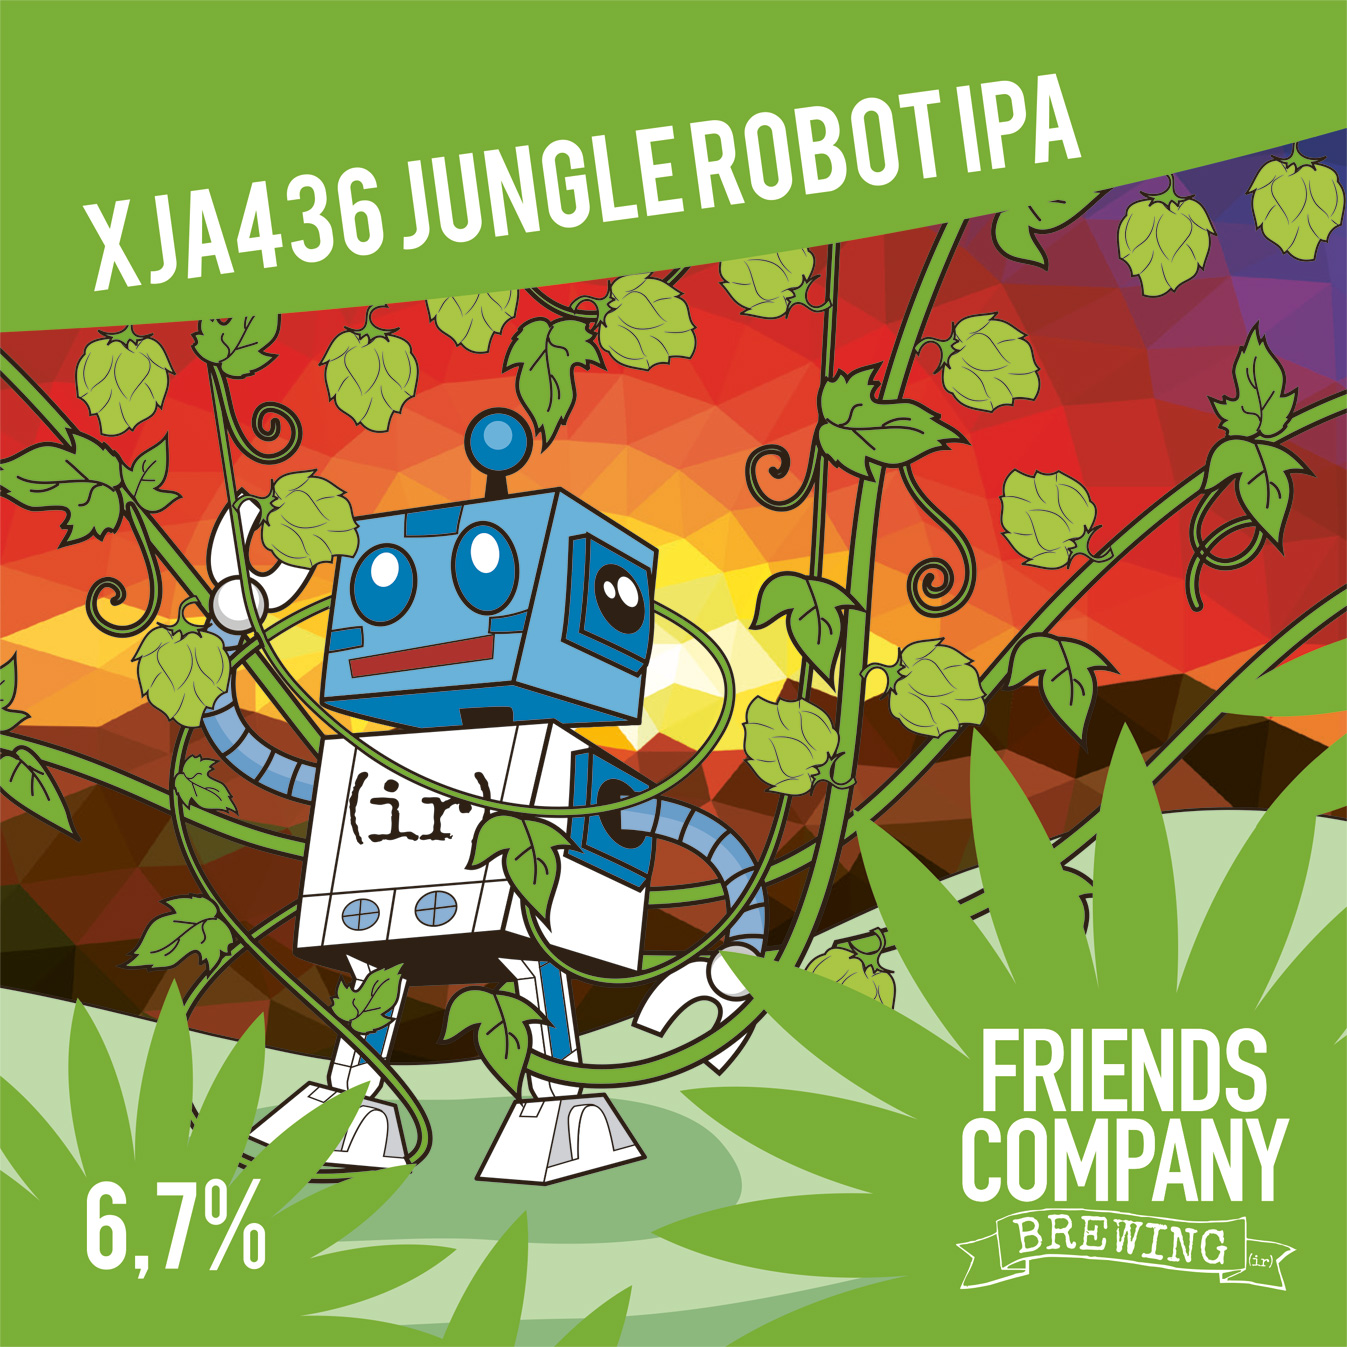 xja436-jungle-robot-ipa